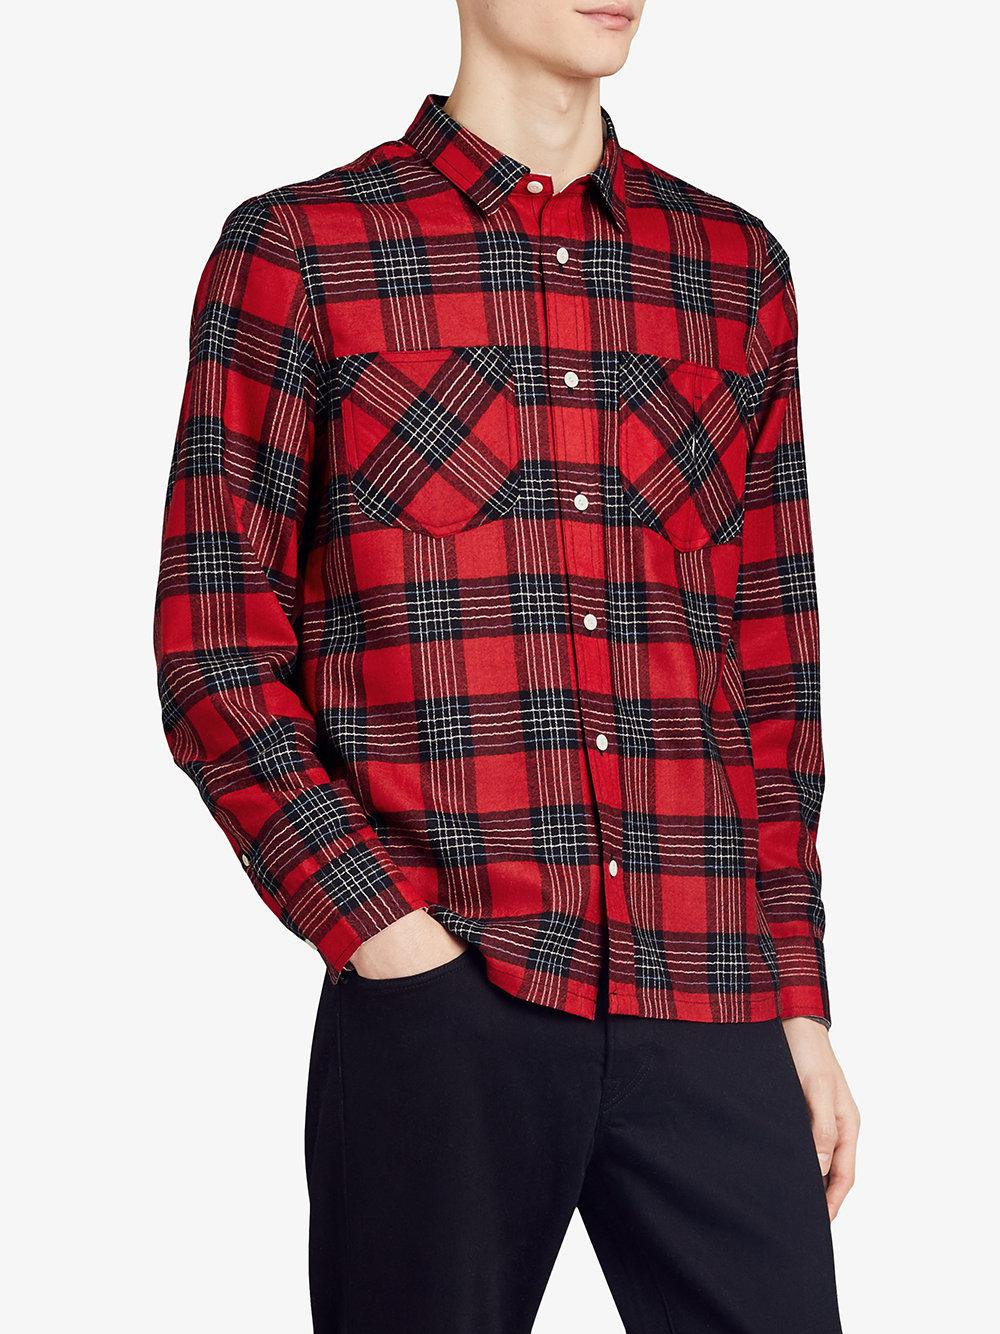 Burberry Wool Patch Pockets Tartan Shirt in Red for Men - Lyst